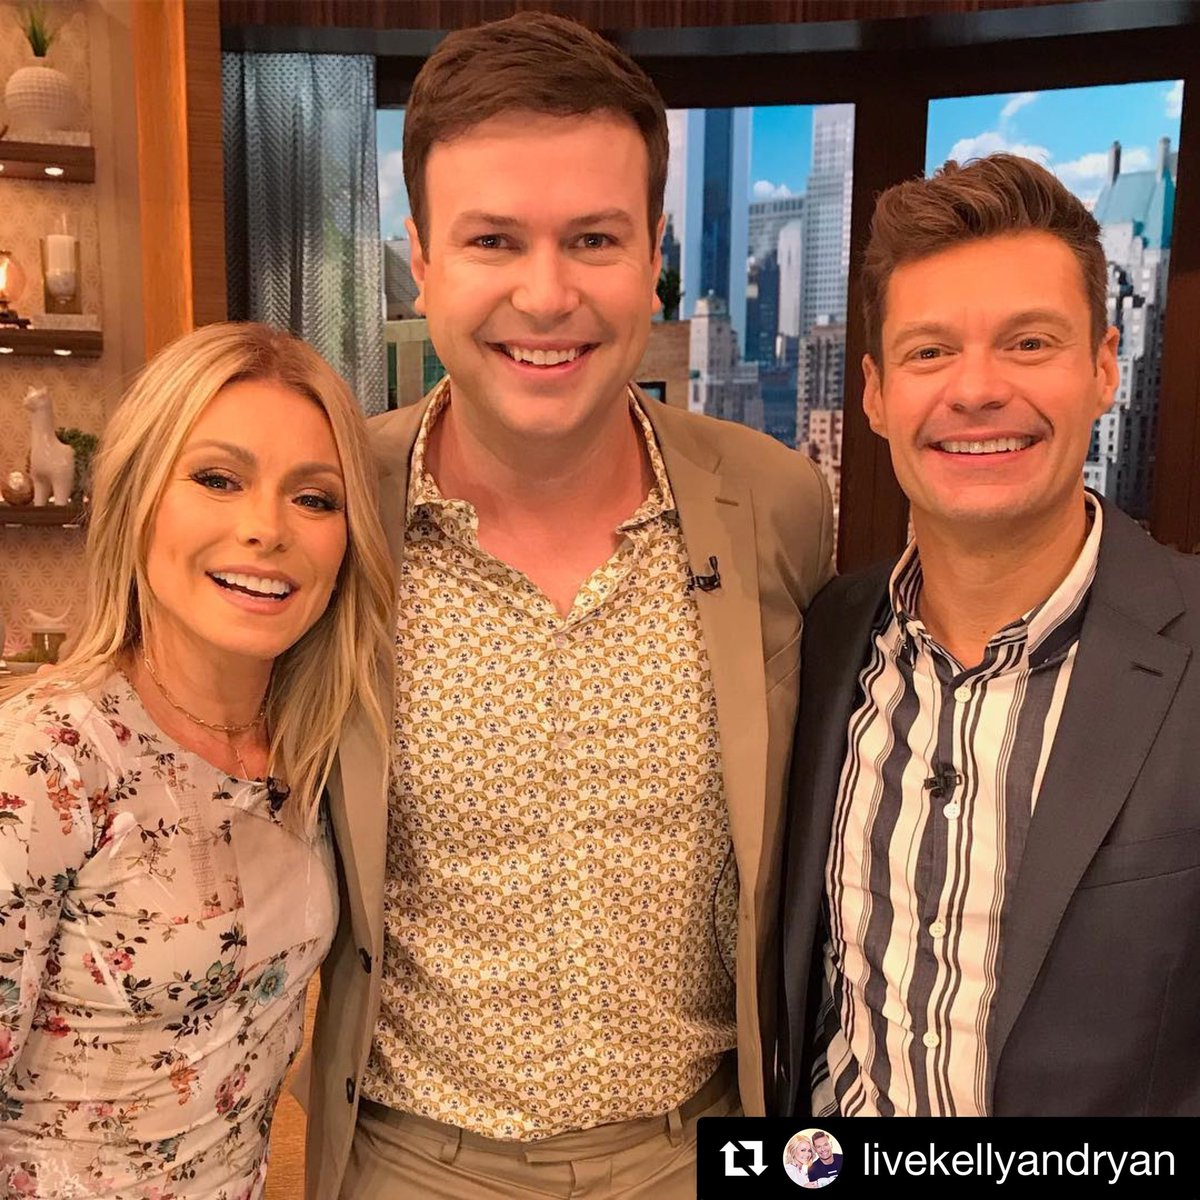 Morning West Coast! I'll be on @LiveKellyRyan in about 2 hours! Hear about how I'm bad with boats.